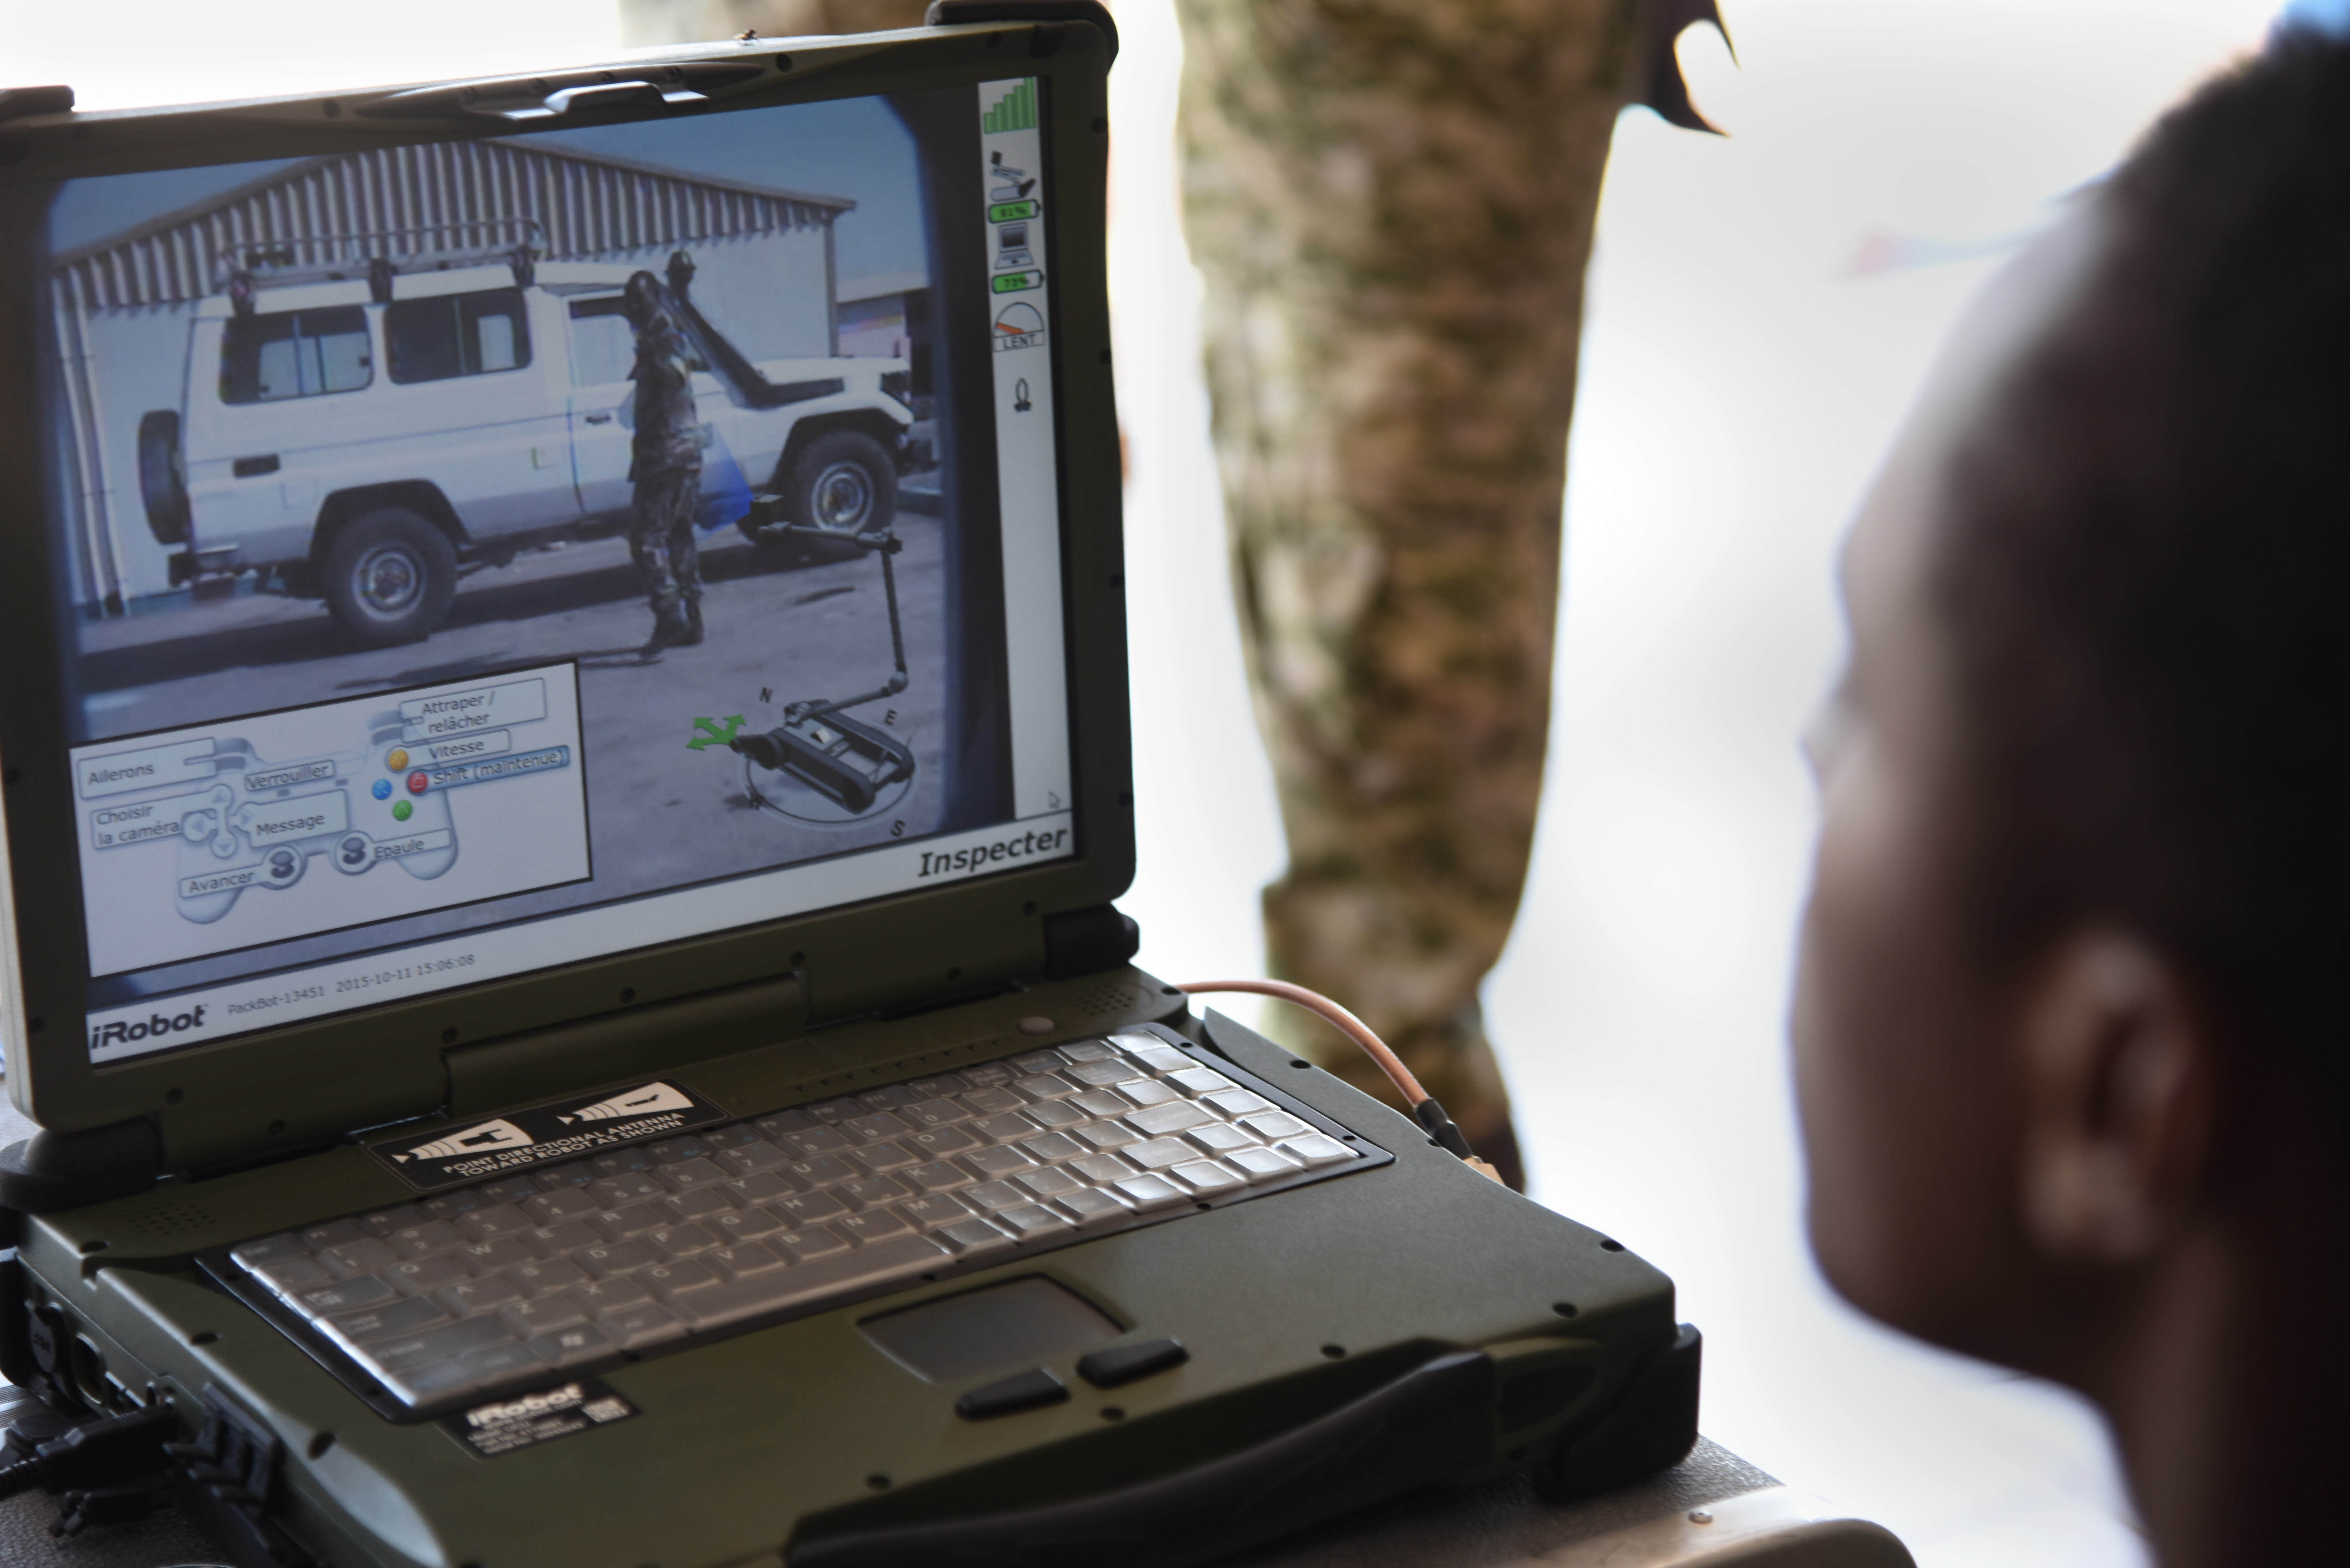 Members of the Djibouti Armed Forces (FAD) monitor a computer transmitting video from the iRobot 510 Packbot Oct. 12, 2015, in Djibouti.  The robot can perform bomb disposal, surveillance and reconnaissance operations.  (U.S. Air Force photo by Staff Sgt. Maria Bowman)